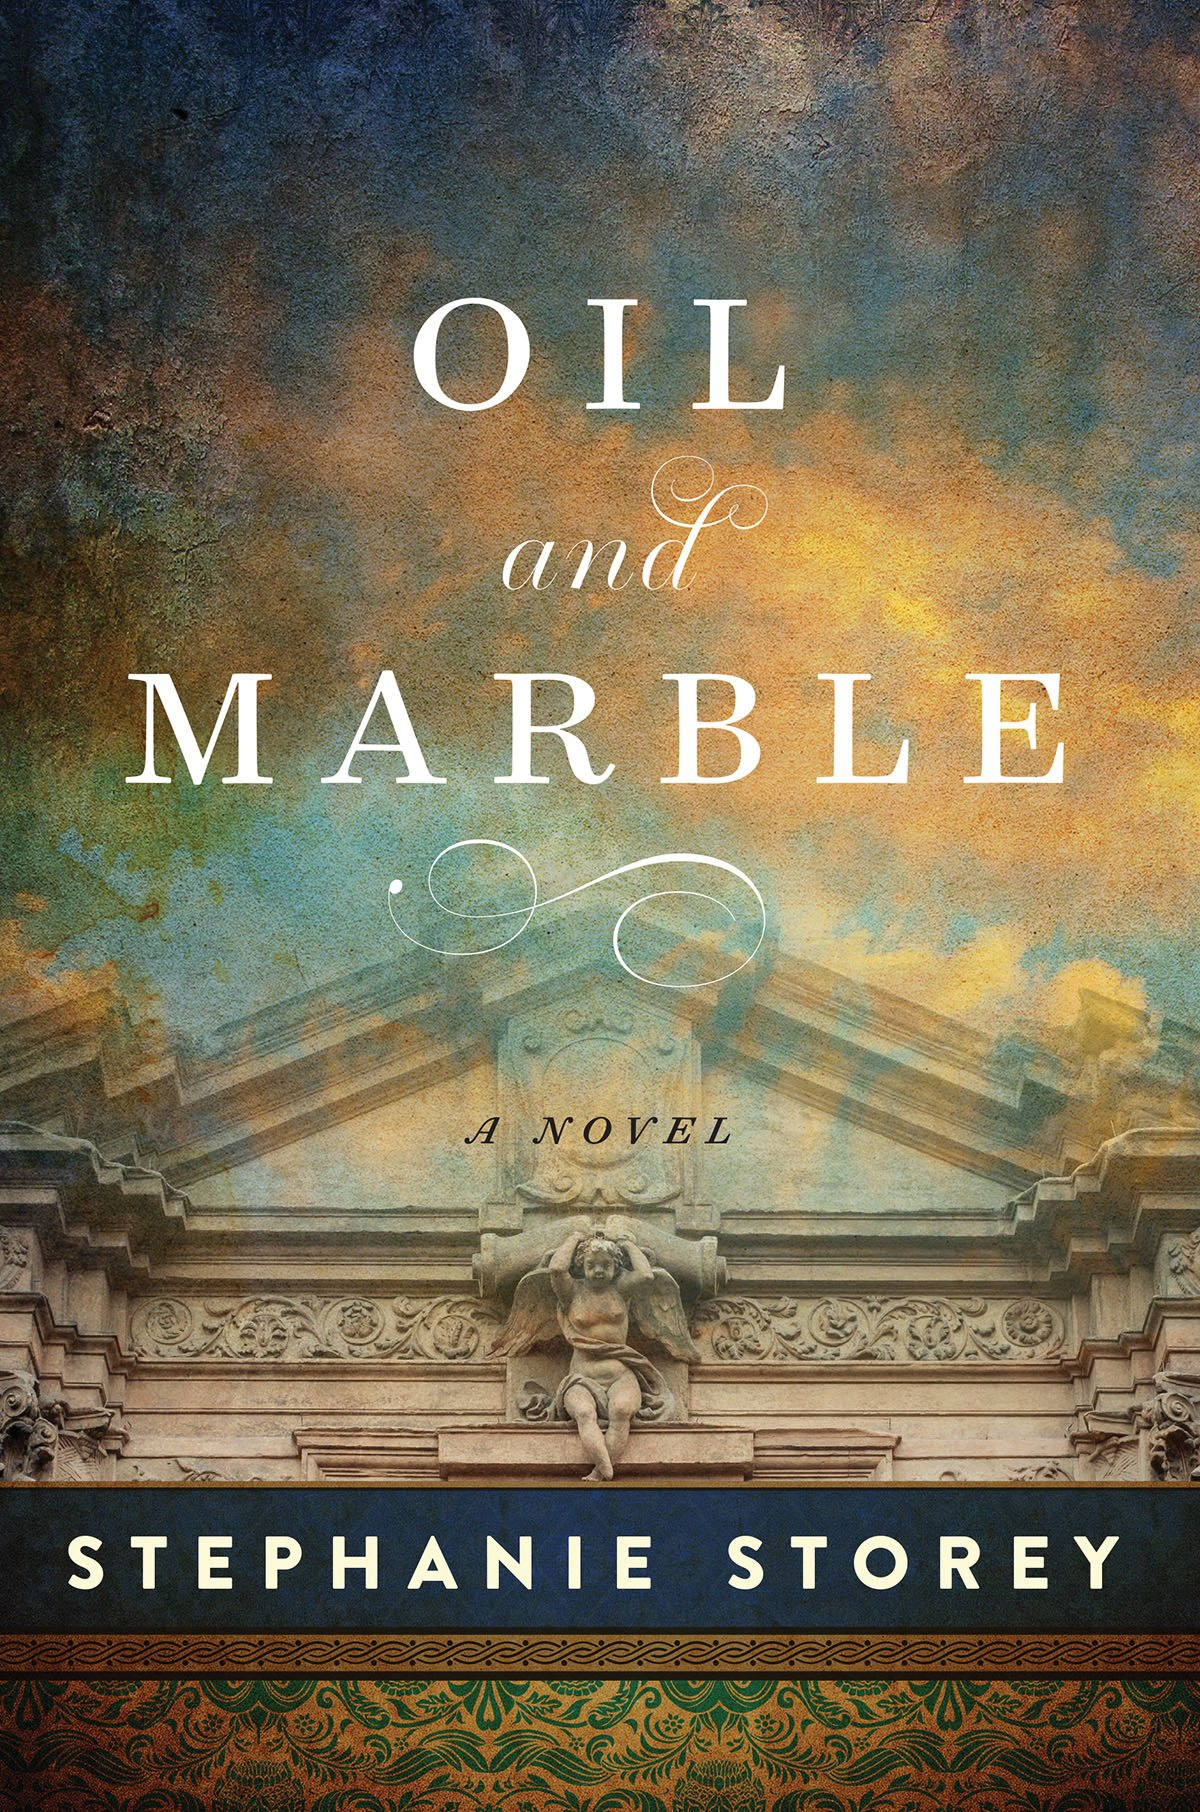 """Oil and Marble by Stephanie Storey - Leonardo v. Michelangelo. Mona Lisa v. David. Hey, The New York Times called it """"tremendously entertaining,"""" and it's now out in 6 languages, so it might be worth adding to your reading list. It's out in paperback on June 5, 2018! (It would be disingenuous not to mention my own novel, wouldn't it?)"""